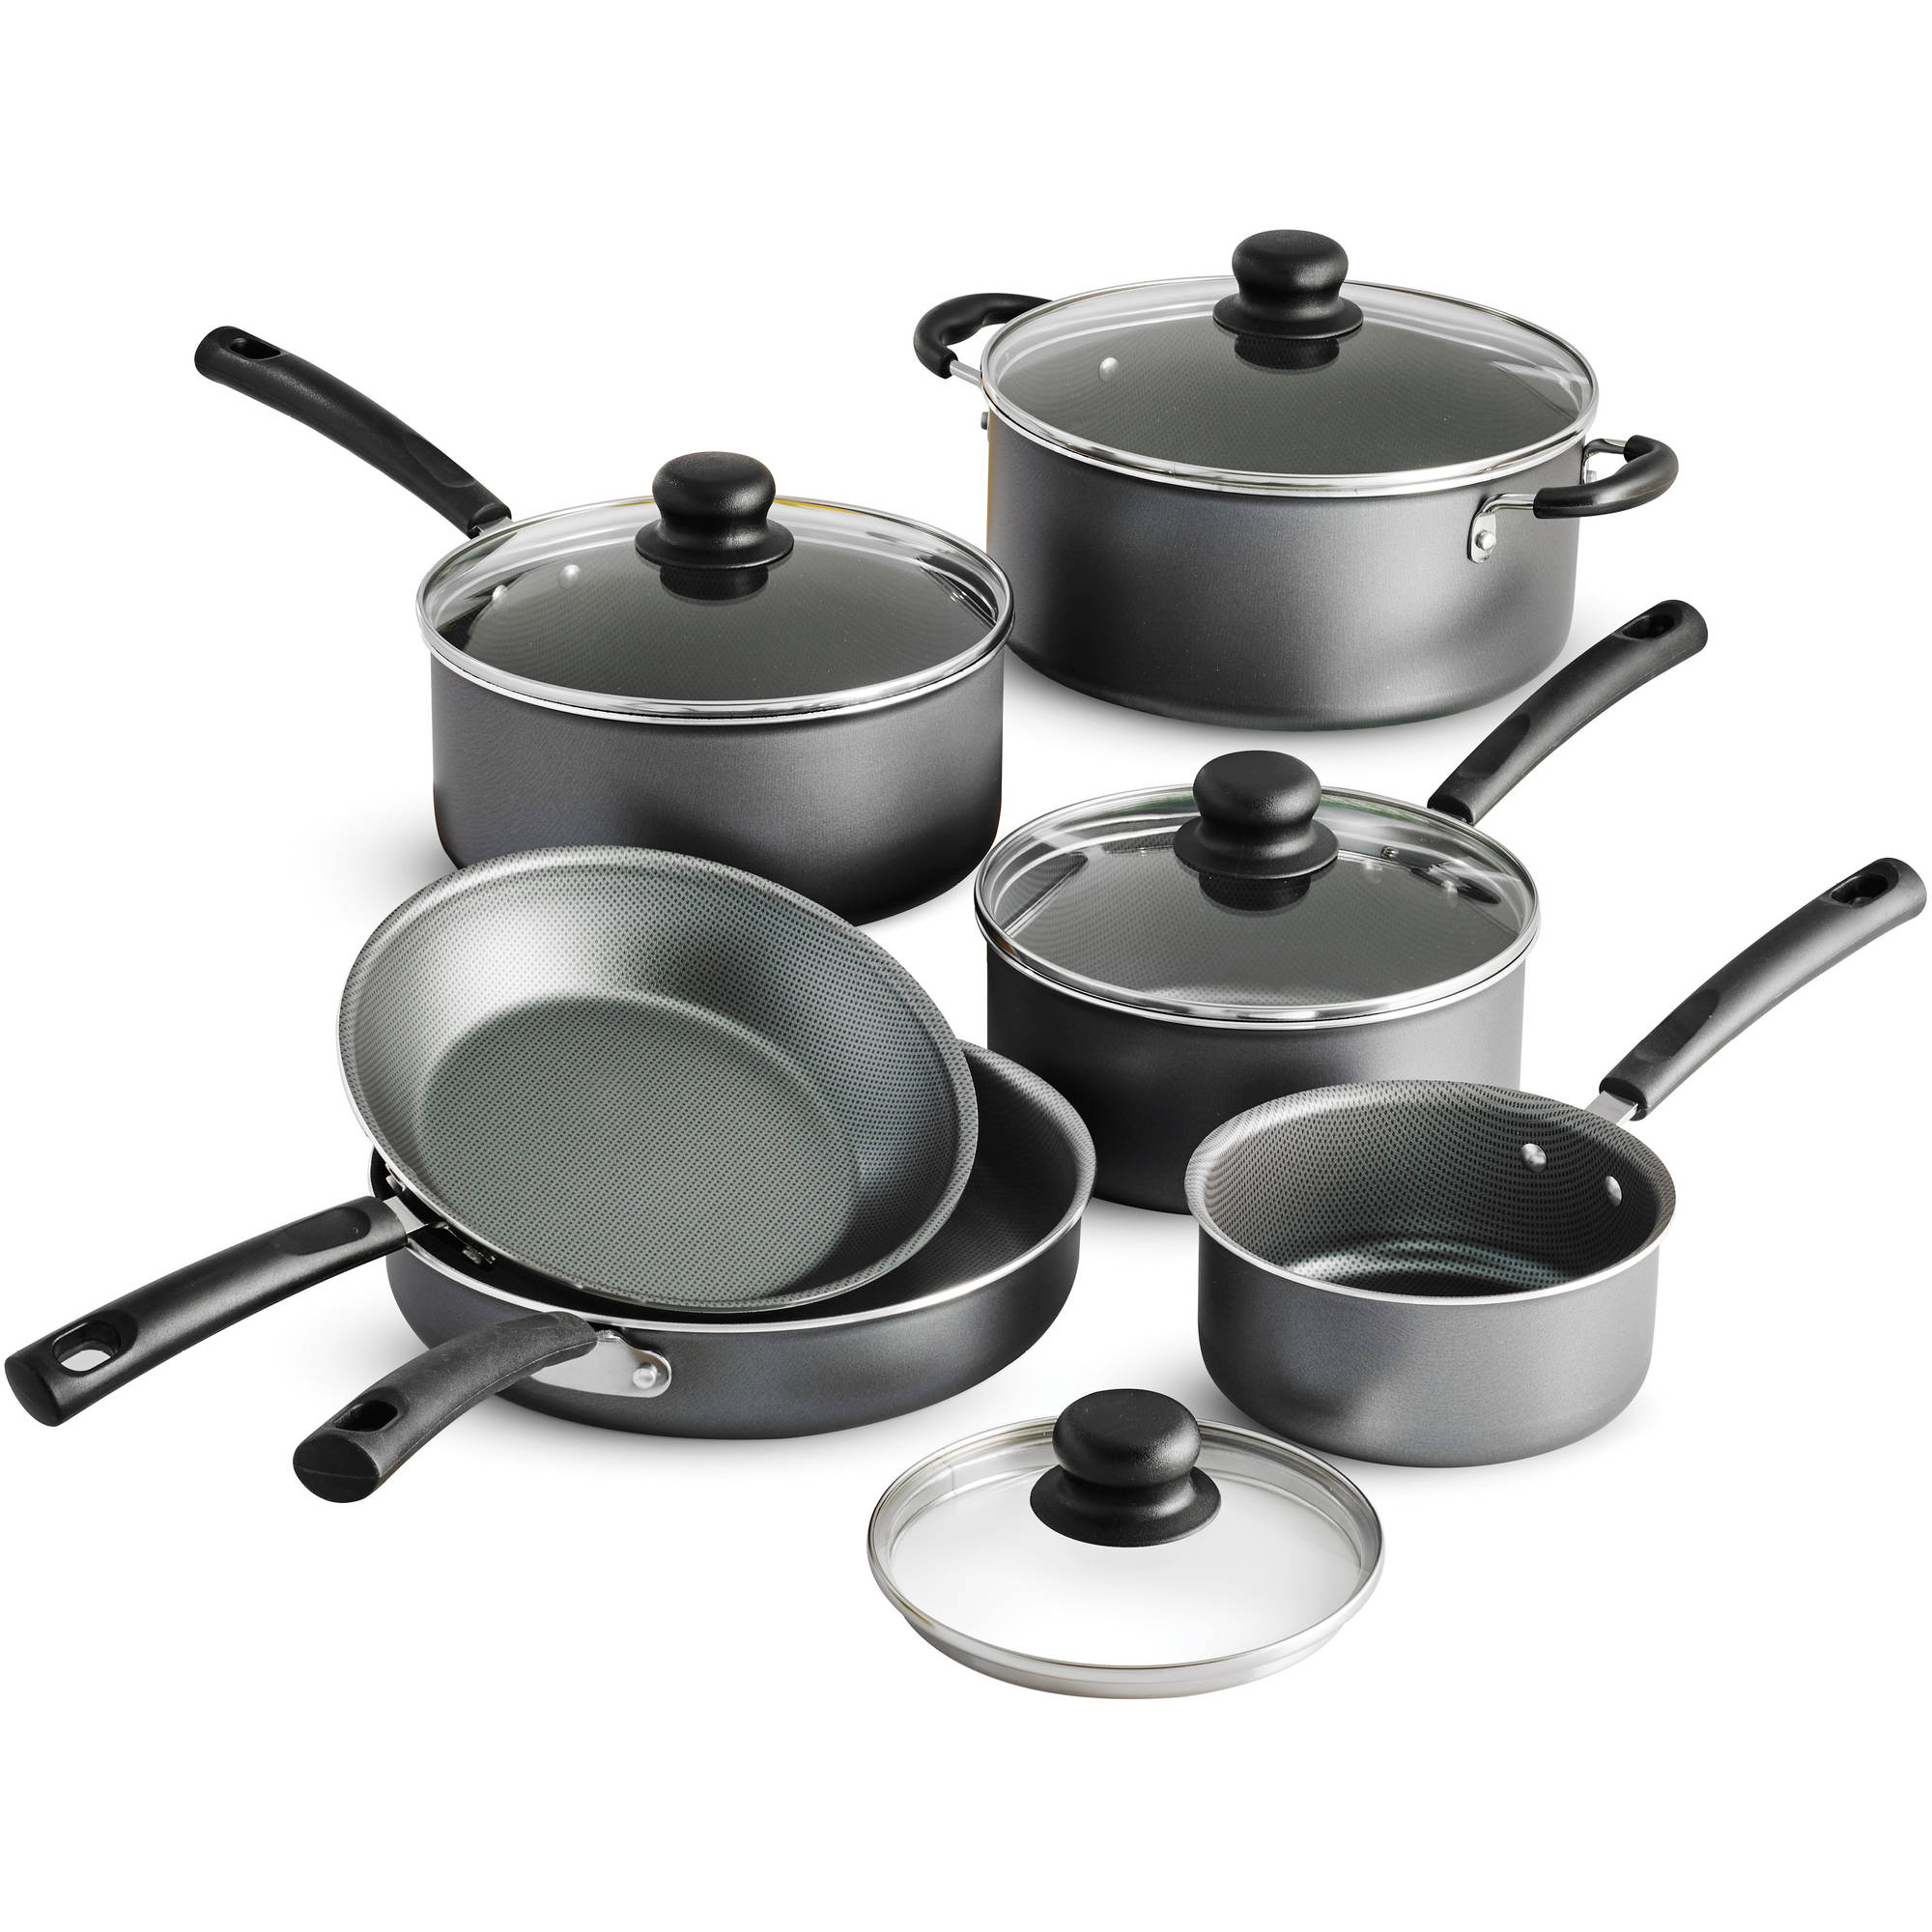 Cookware Tramontina 10 Pc Non Stick Pan Set Buysmartt